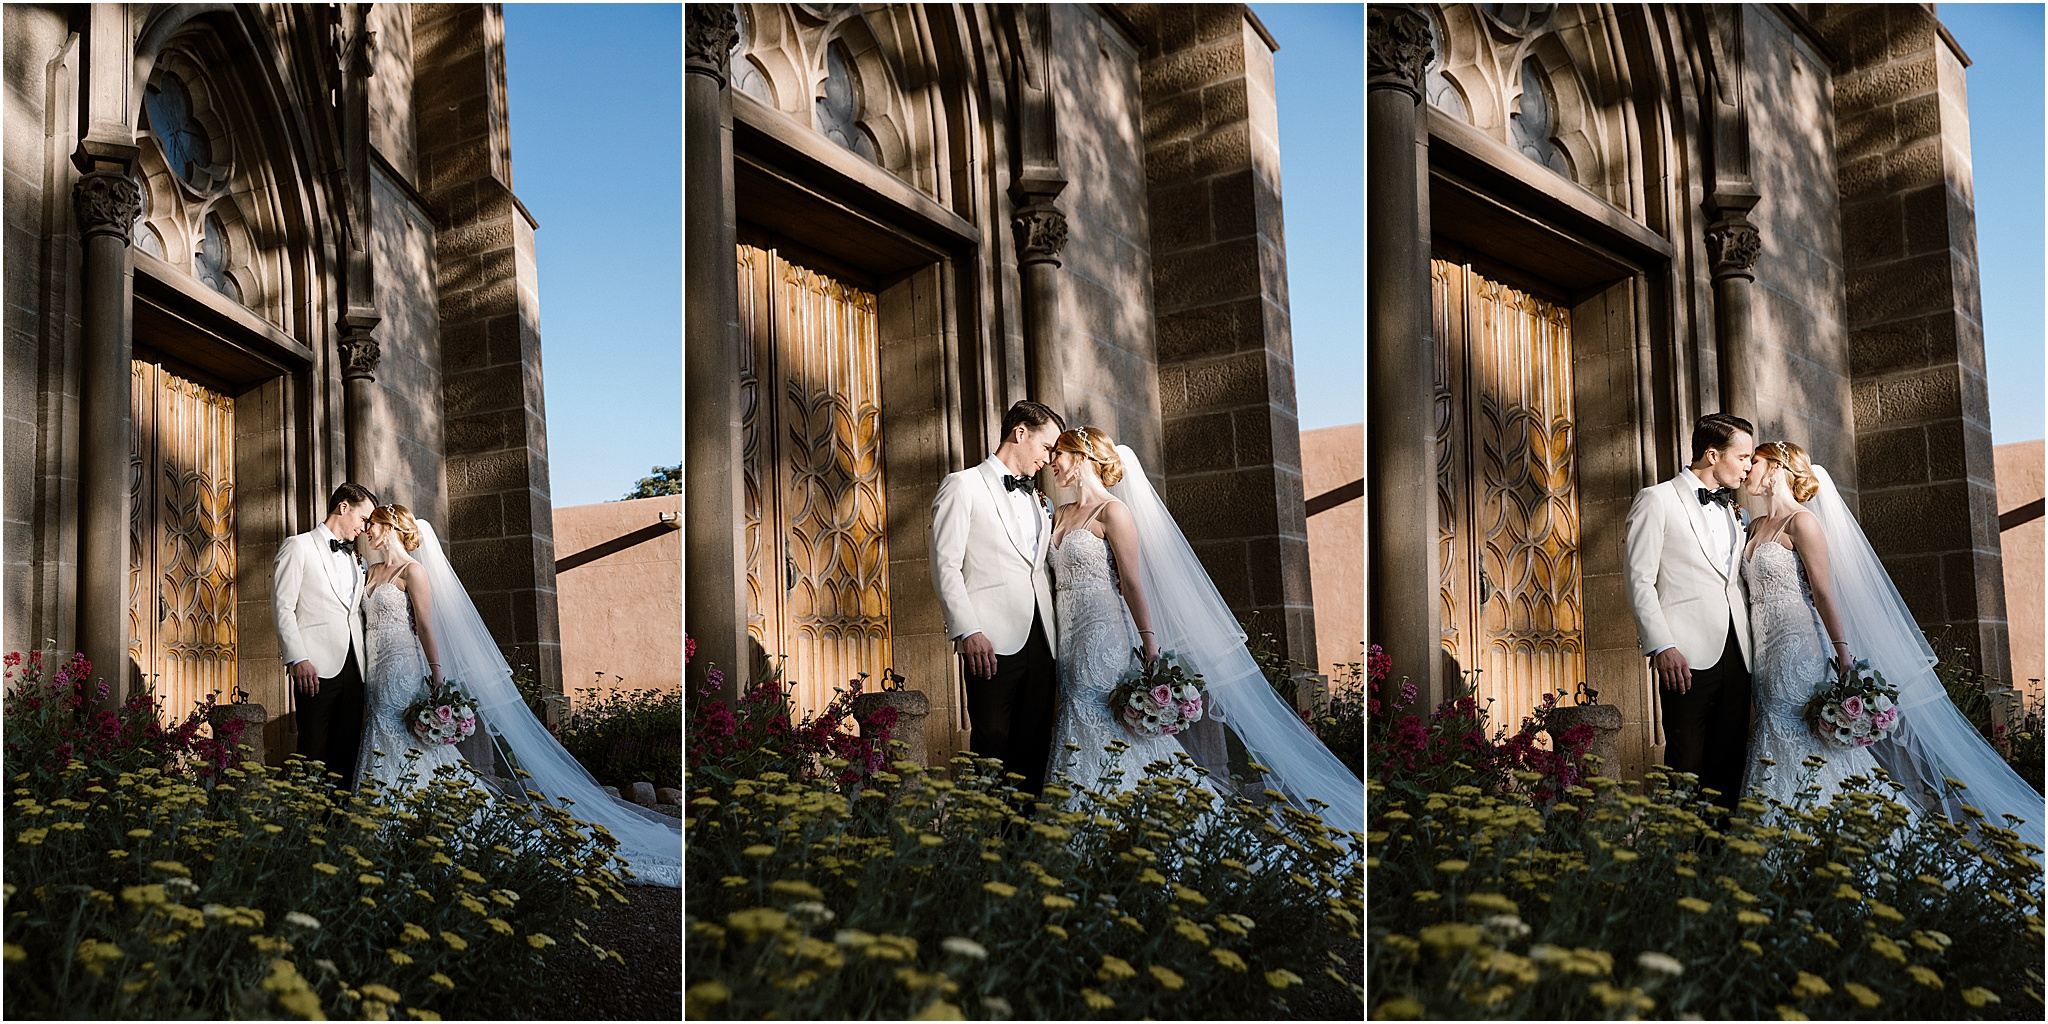 BLUE ROSE PHOTOGRAPHY SANTA FE WEDDING_33